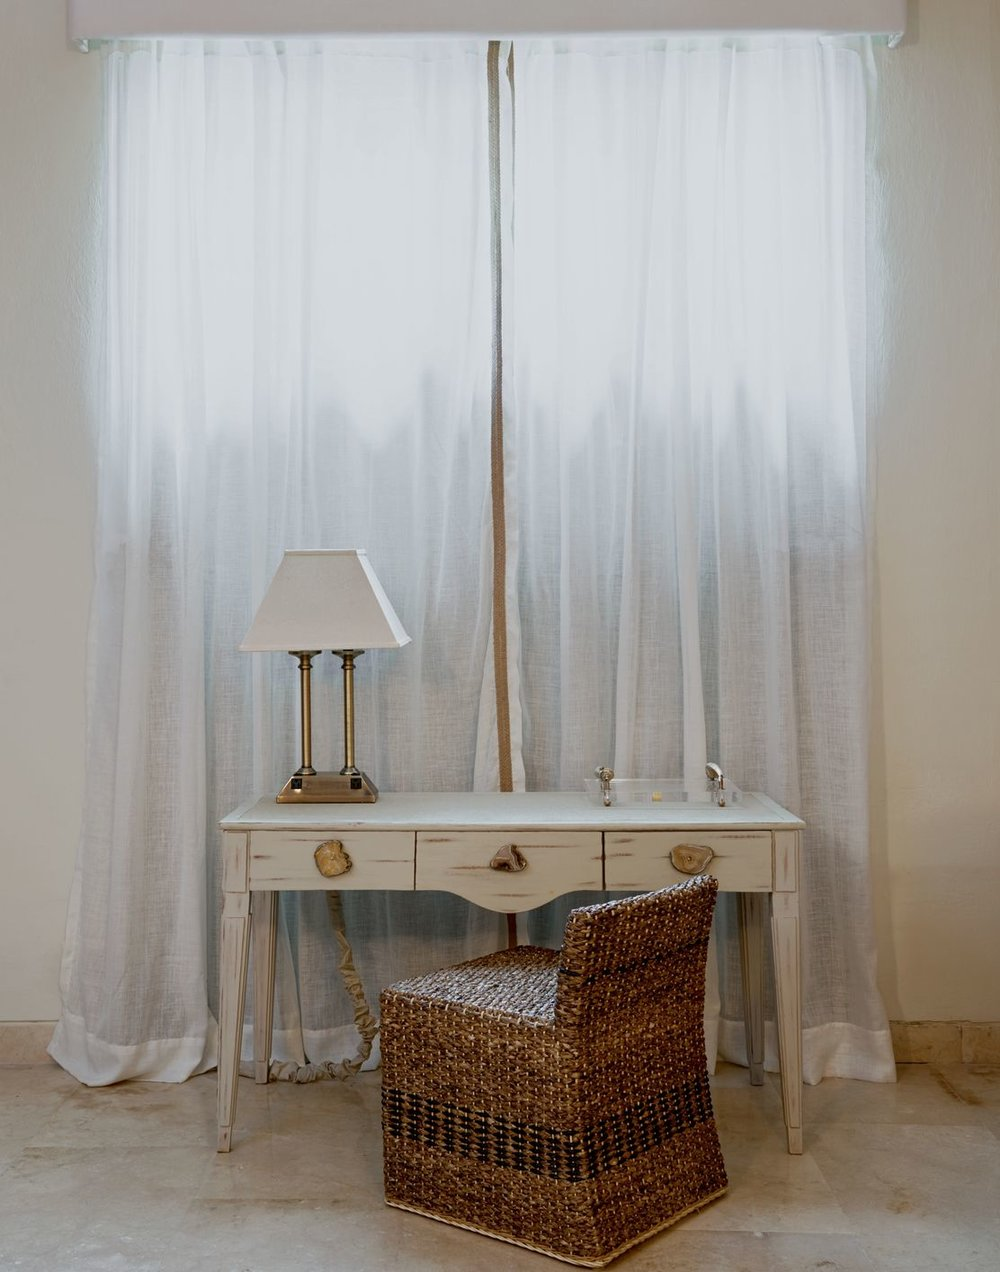 Details in the guest rooms. Chair made of banana leaf and silk ribbon. Photo by  Tawfick Espriella .